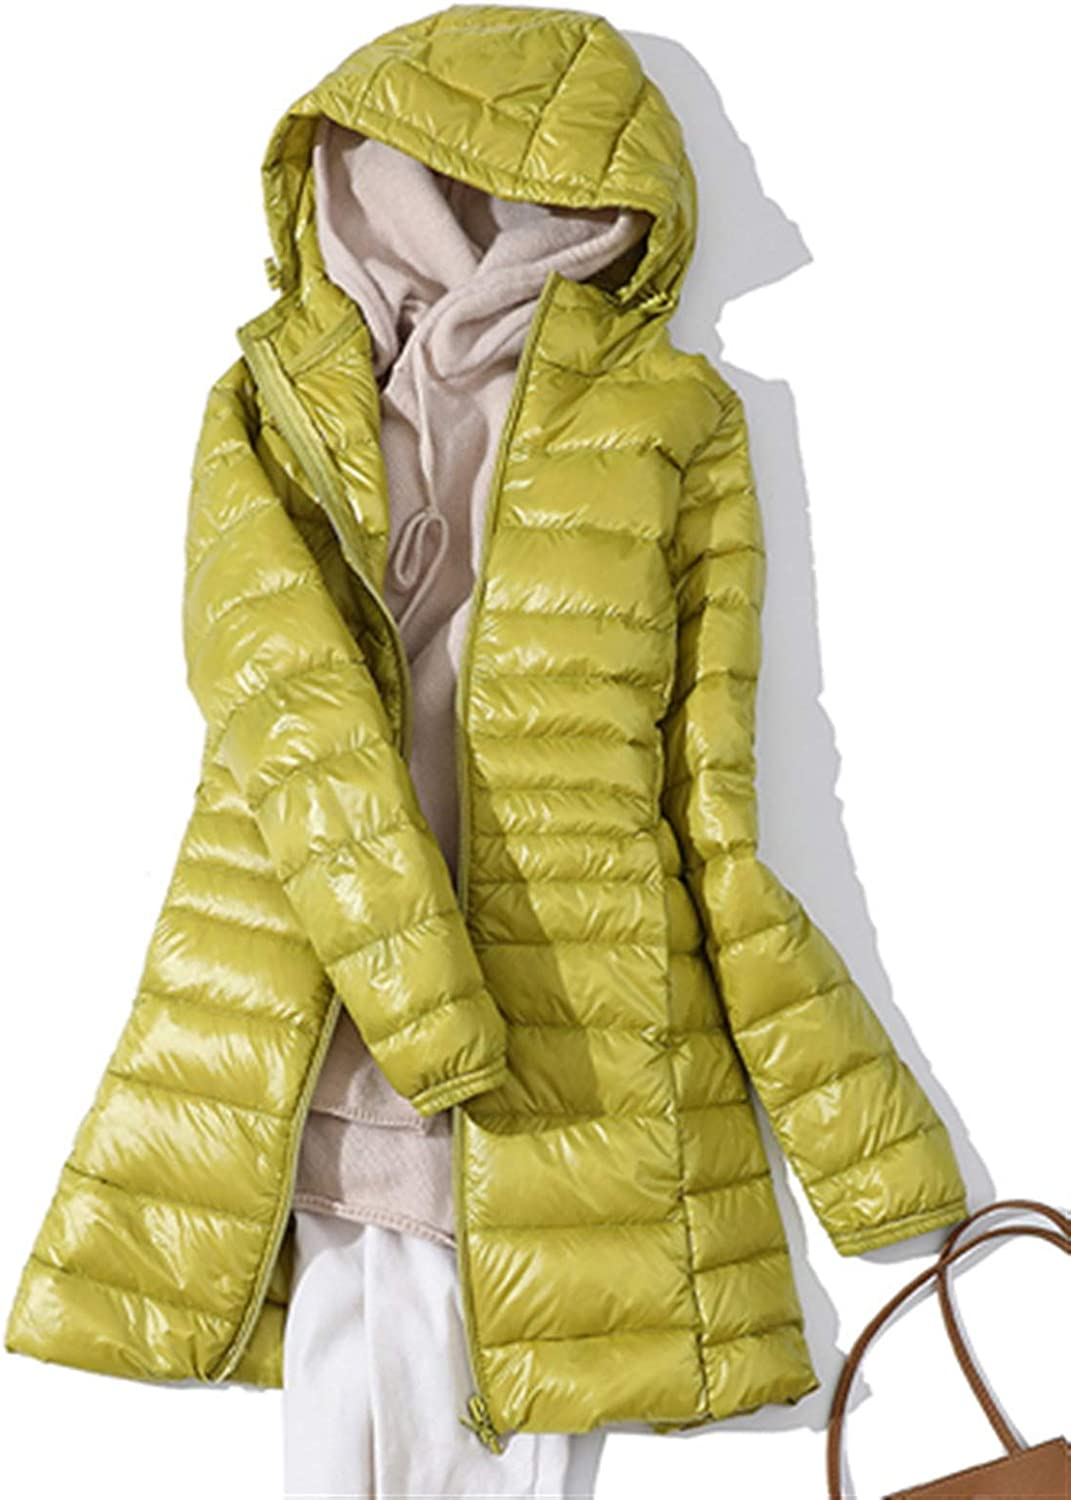 Thickened Latest item Down Jacket Leather Plaid Coat SEAL limited product Winter 7XL Woman